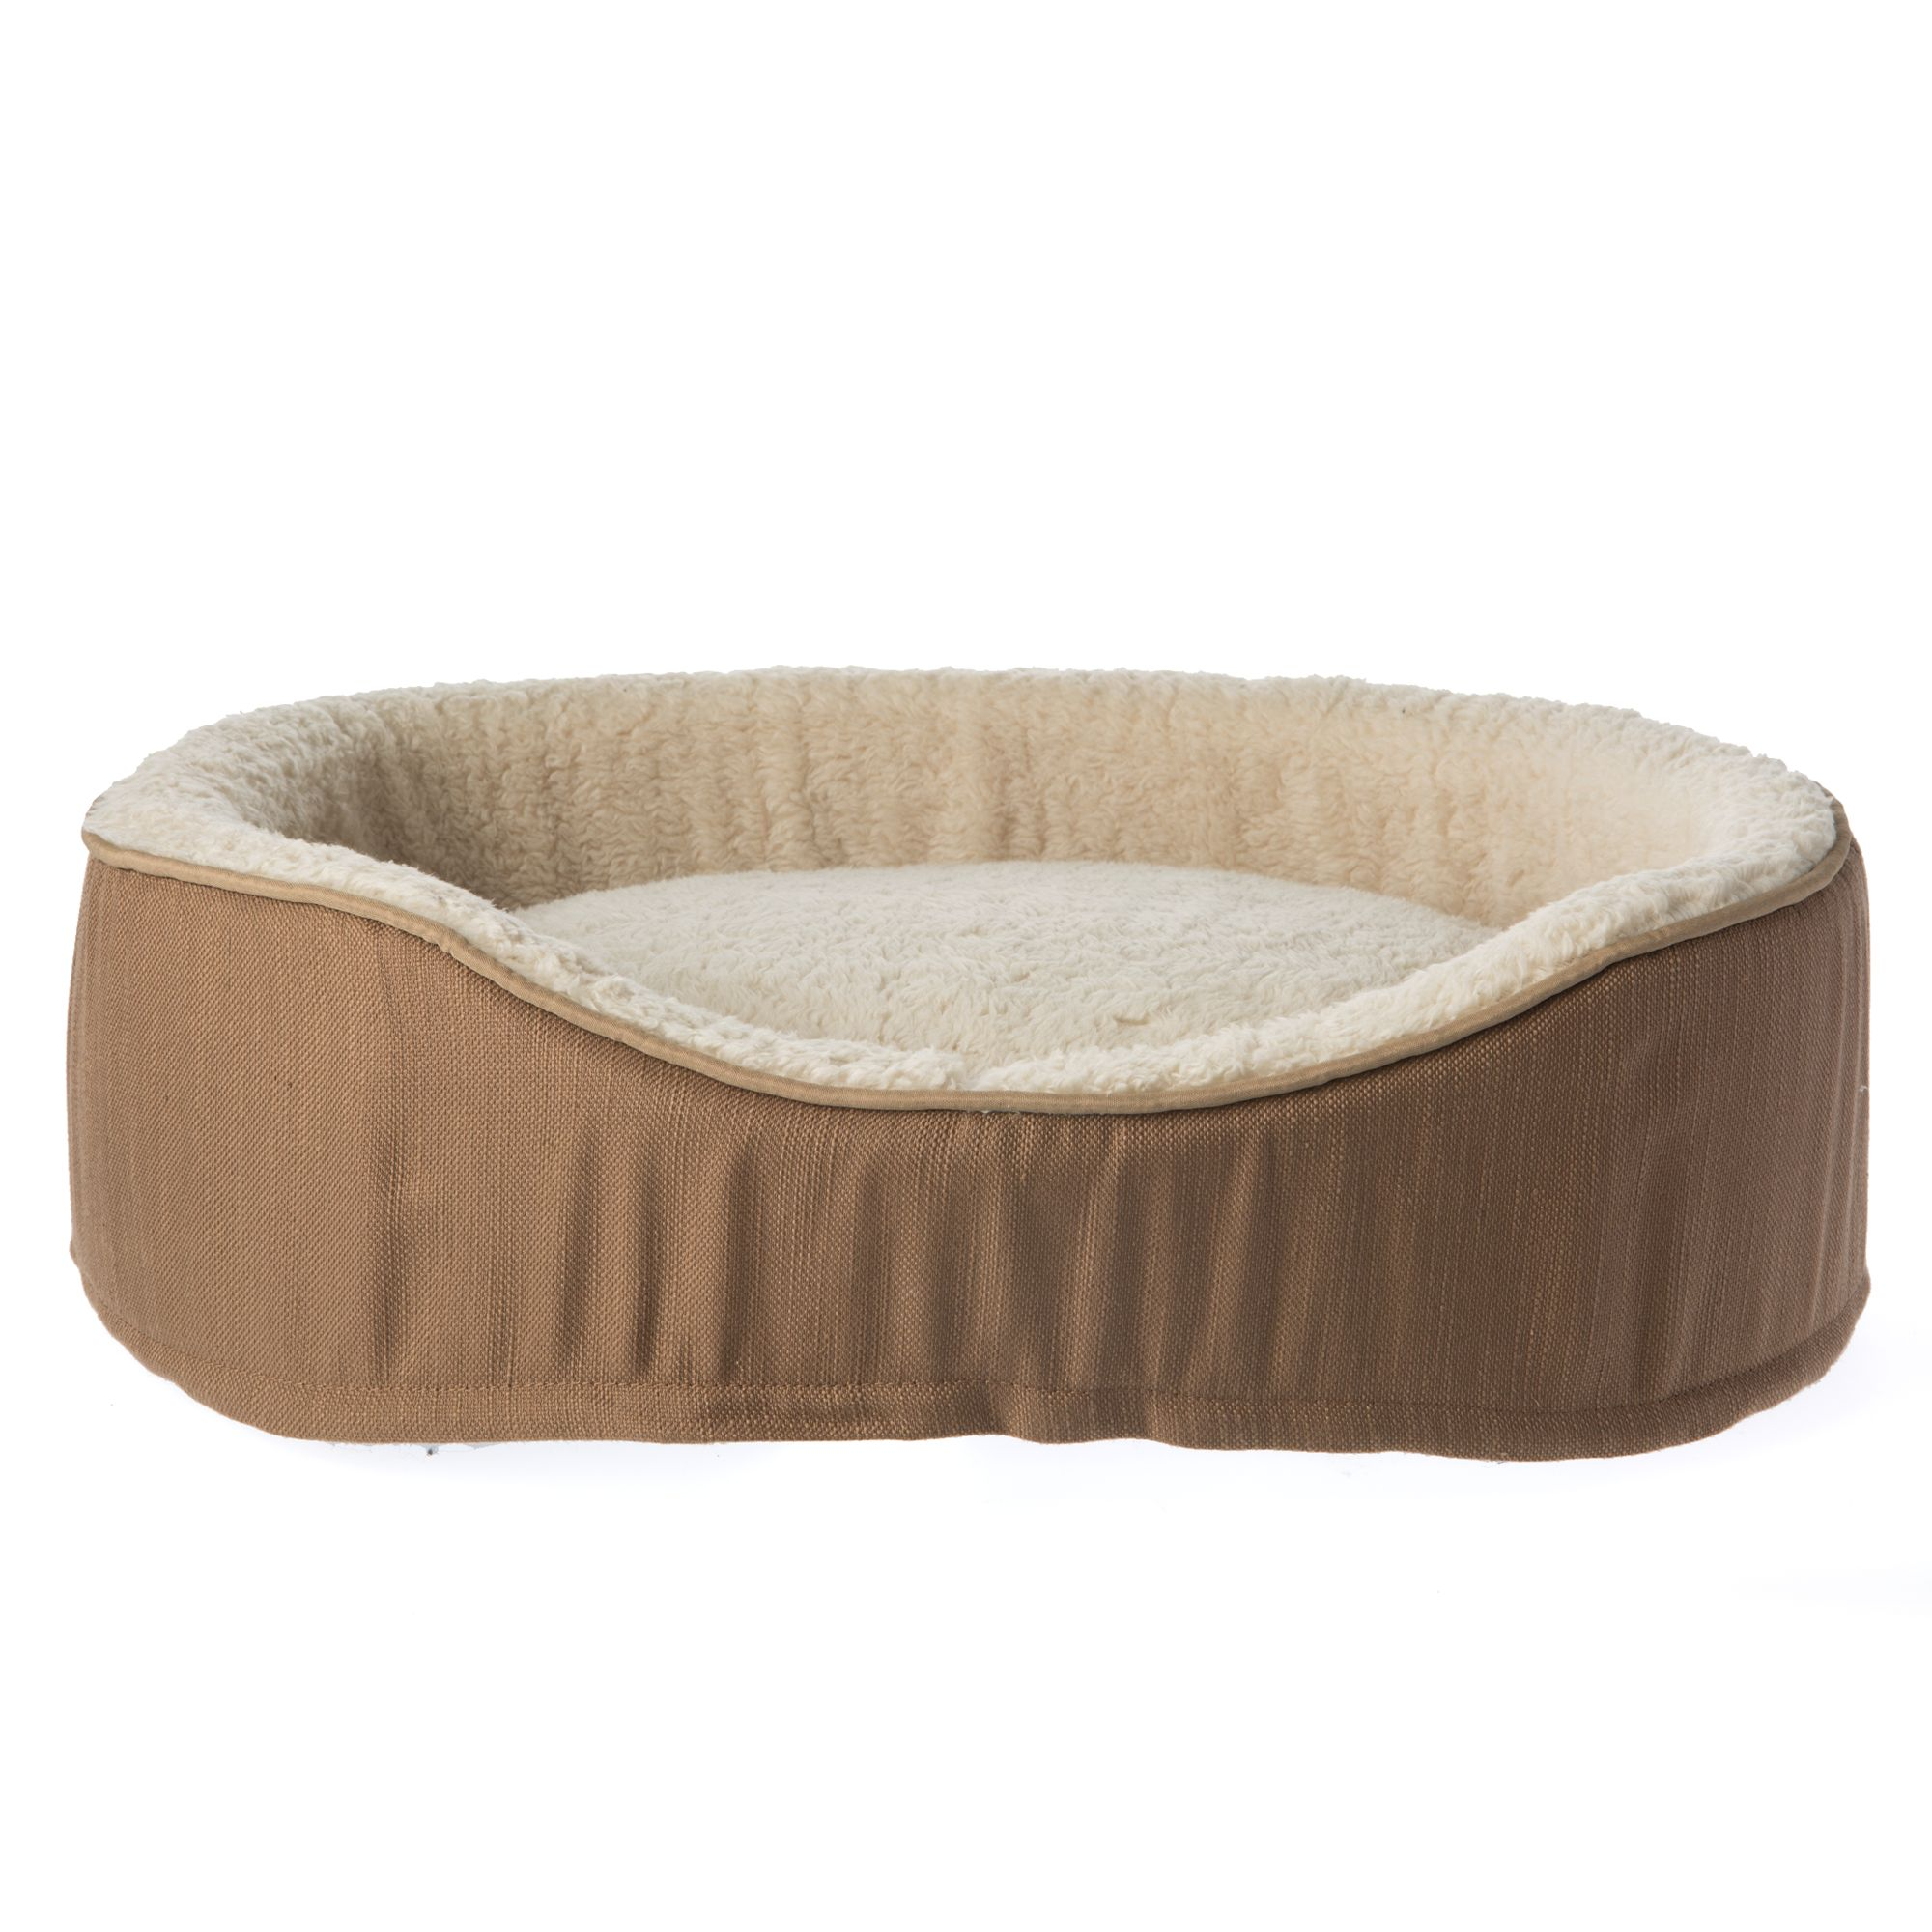 sofa covers petsmart pictures of leather sectional sofas top paw orthopedic bed brokeasshome